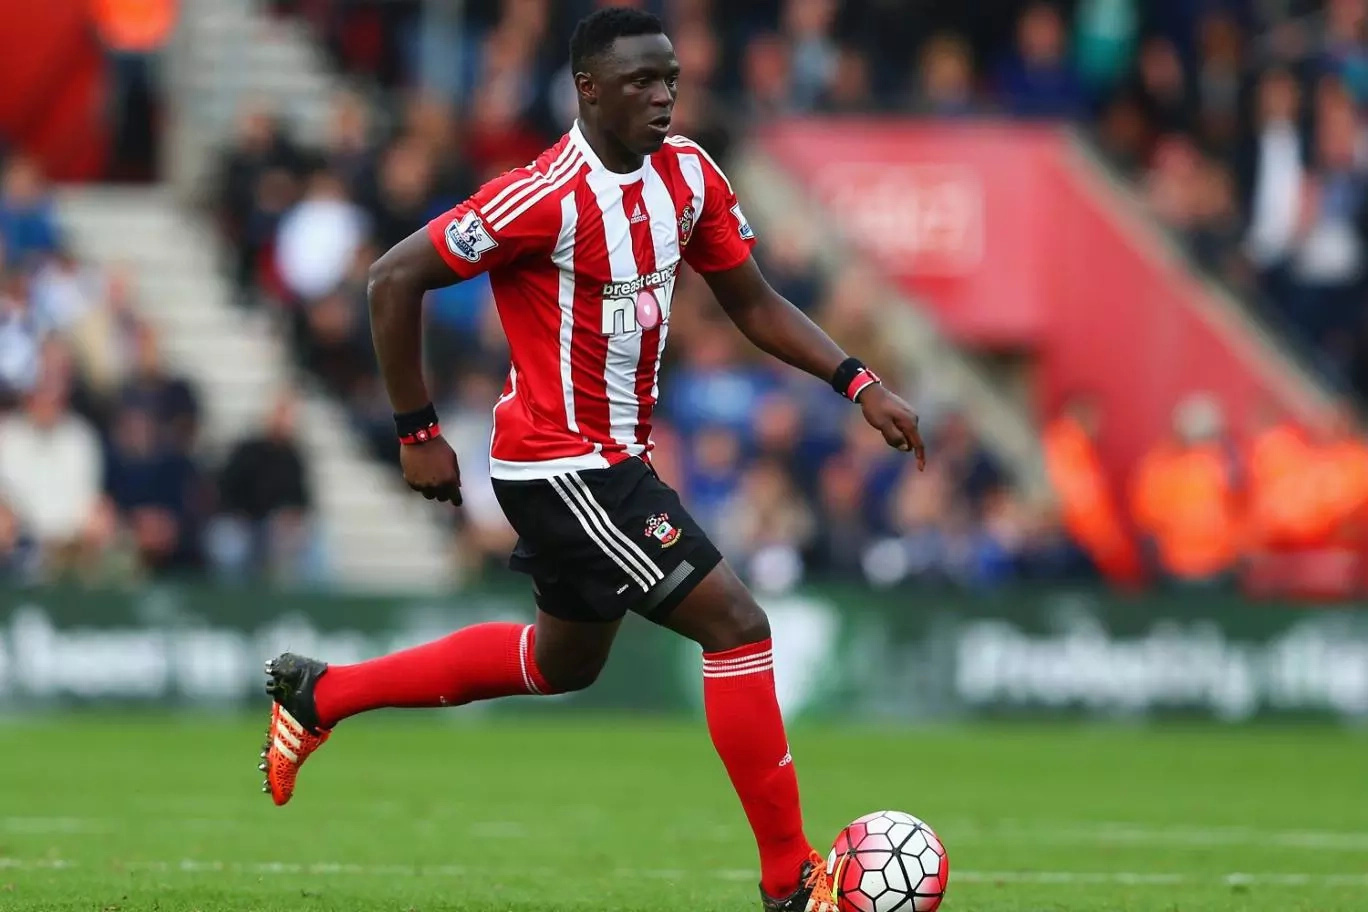 Victor Wanyama a hidden secret about him that has seen him rise in football